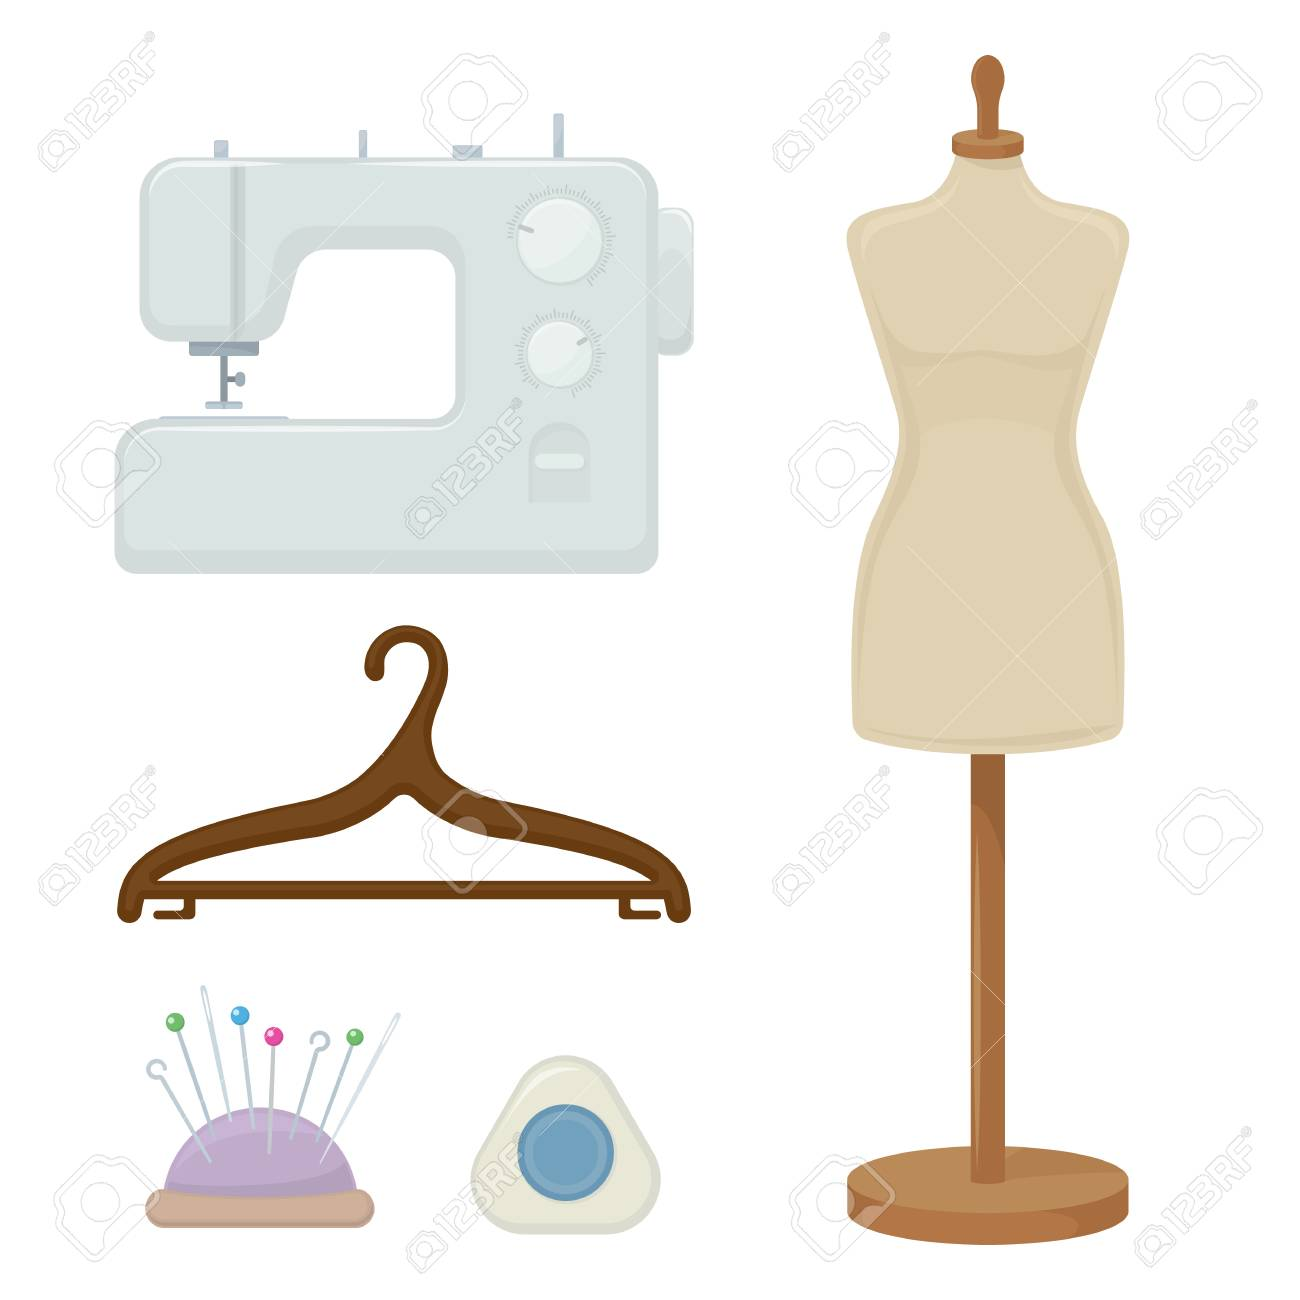 Female tailors dummy, sewing machine, hanger, cartoon illustration of tool for for sewing. Vector - 89500628